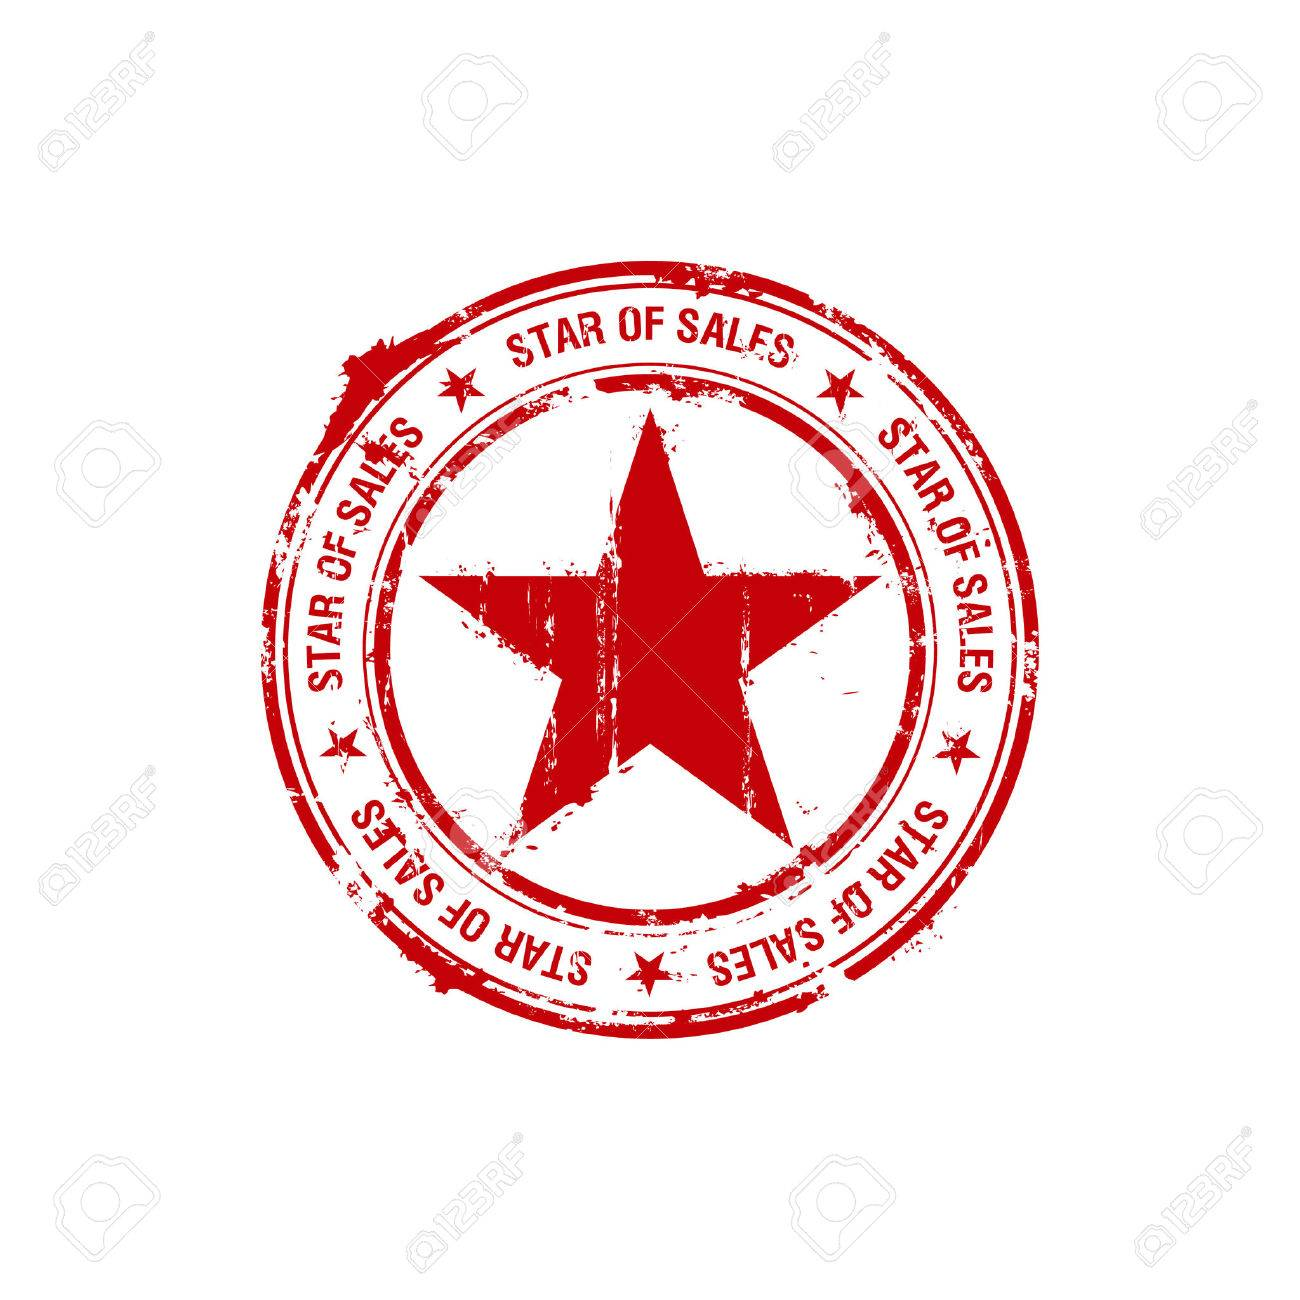 star of sales rubber stamp Stock Vector - 8853048